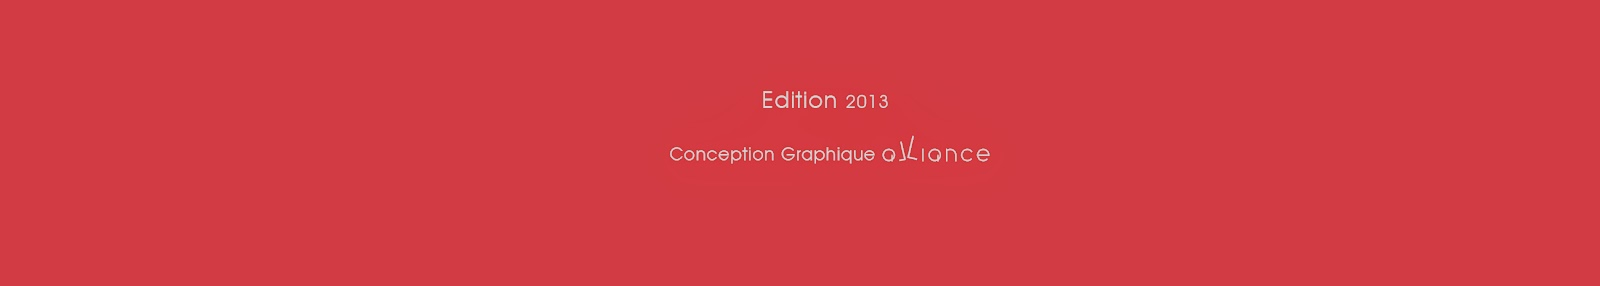 Conception graphique Alliance